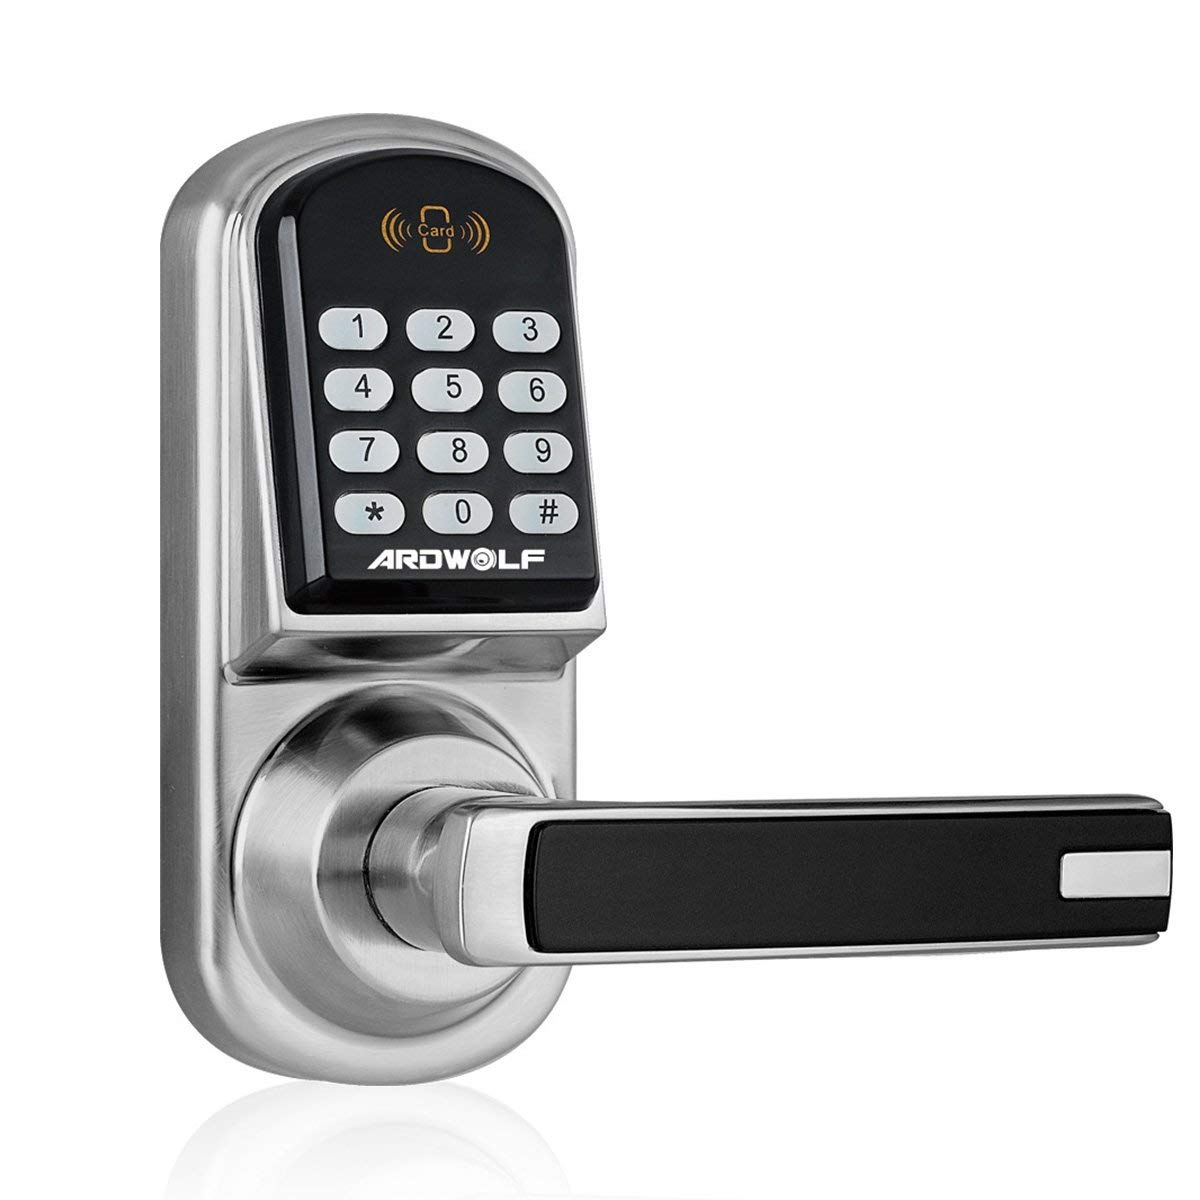 Ardwolf A30 Keyless Smart Door Lock Keypad, with Reversible Lever and Automatic Locking